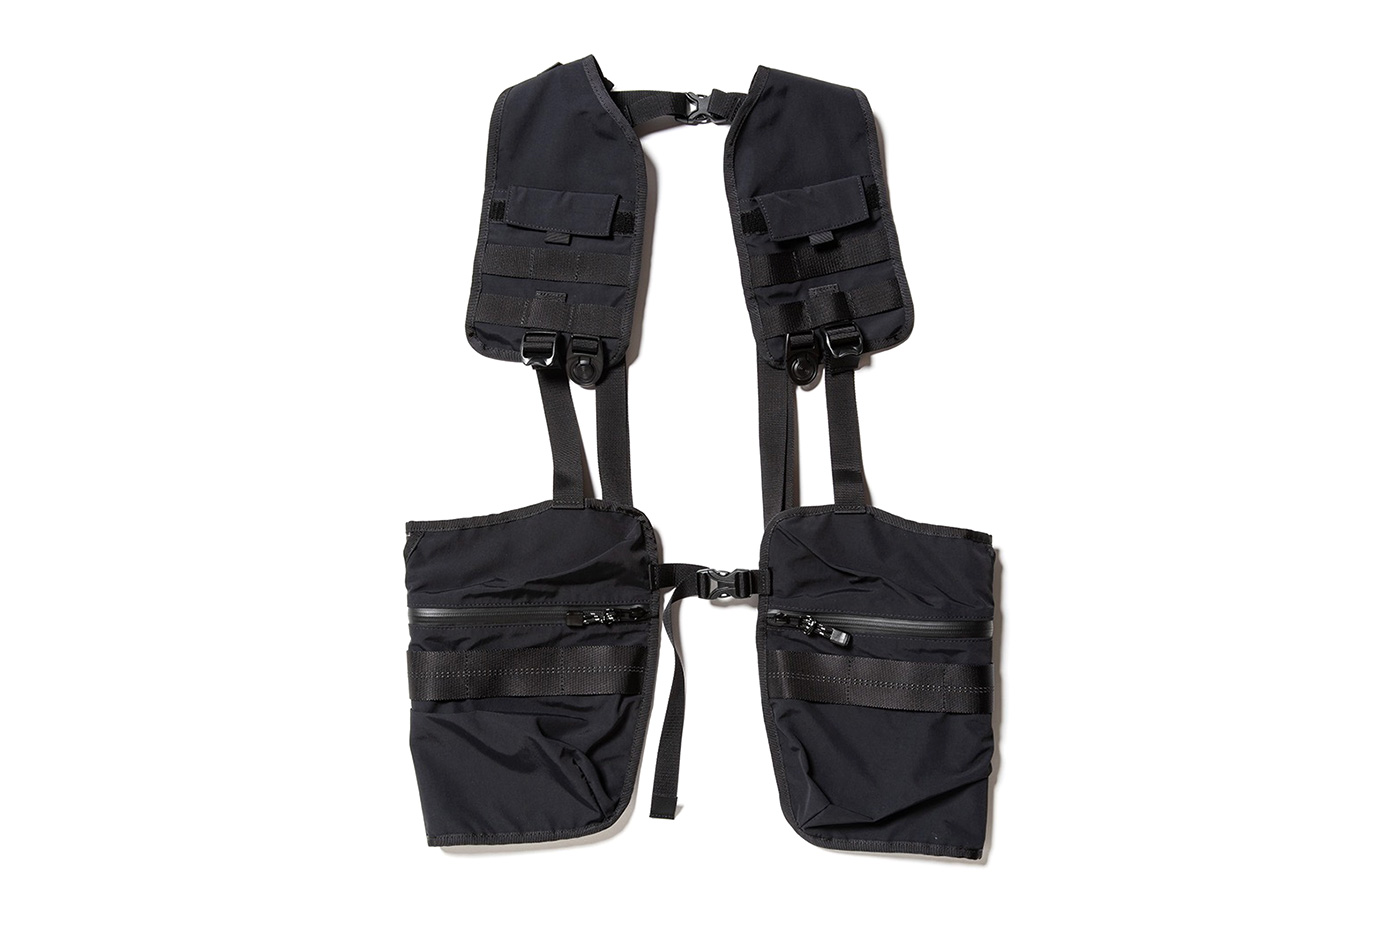 MEANSWHILE x Master-Piece Capsule Collection tactical vest backpack bags daypack sacoche luggage vest drop date price details